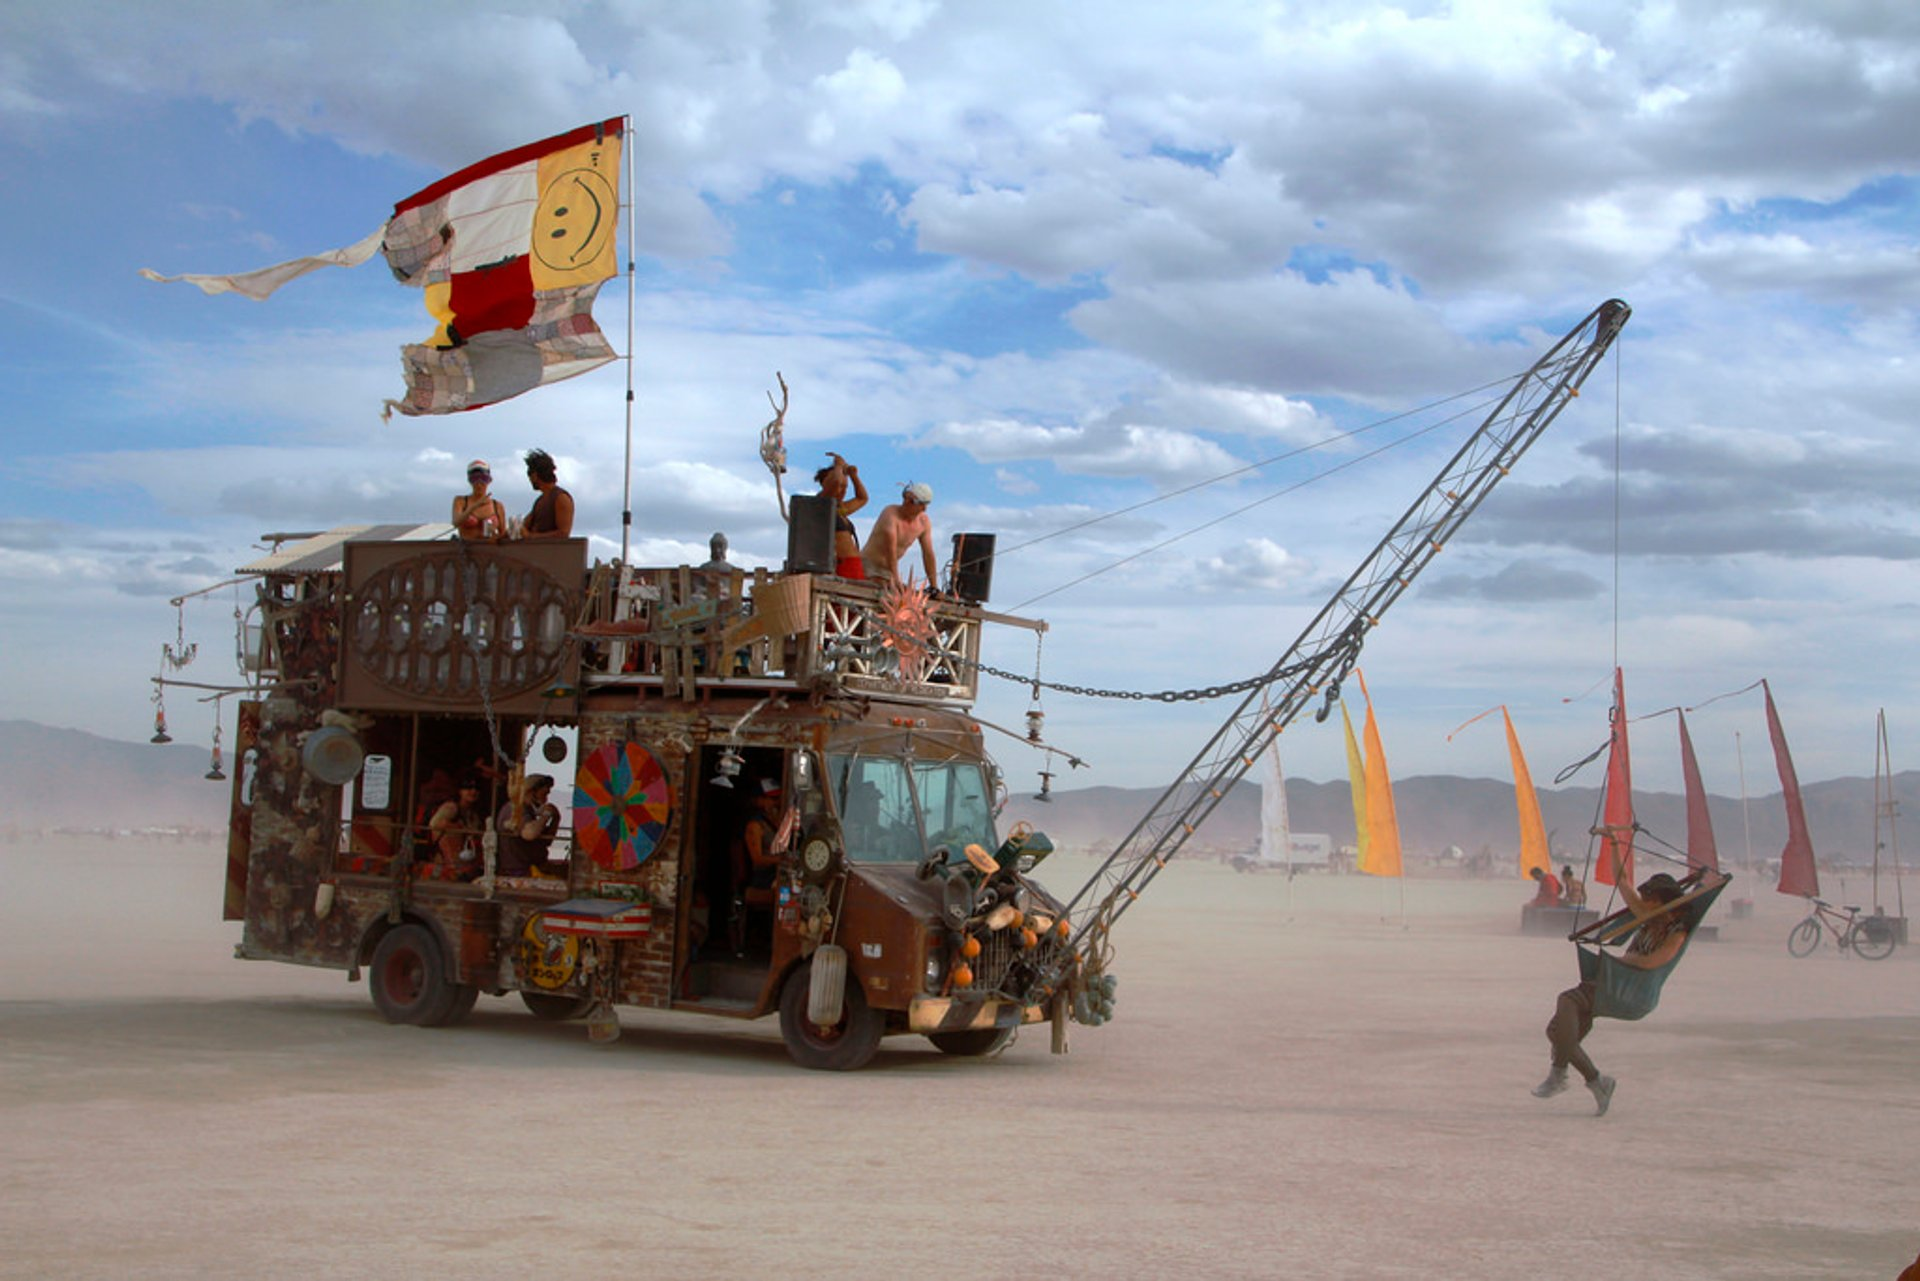 Best time for Burning Man 2020